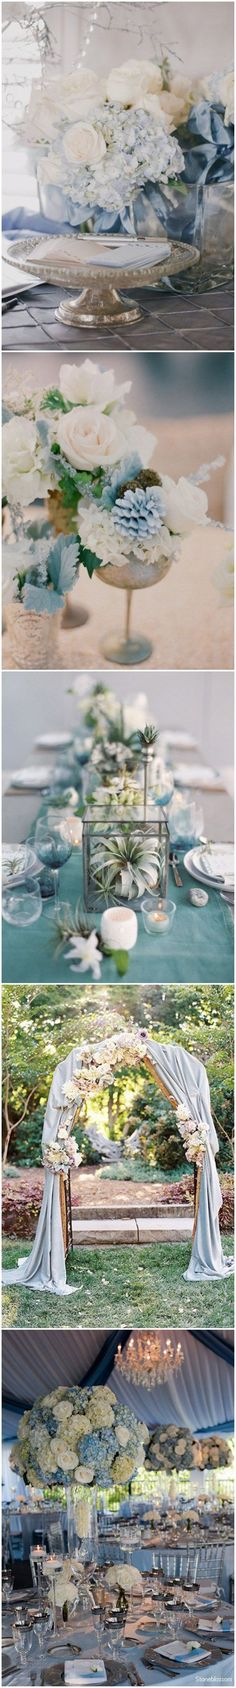 dusty blue wedding ideas -  dusty blue Wedding Decorations